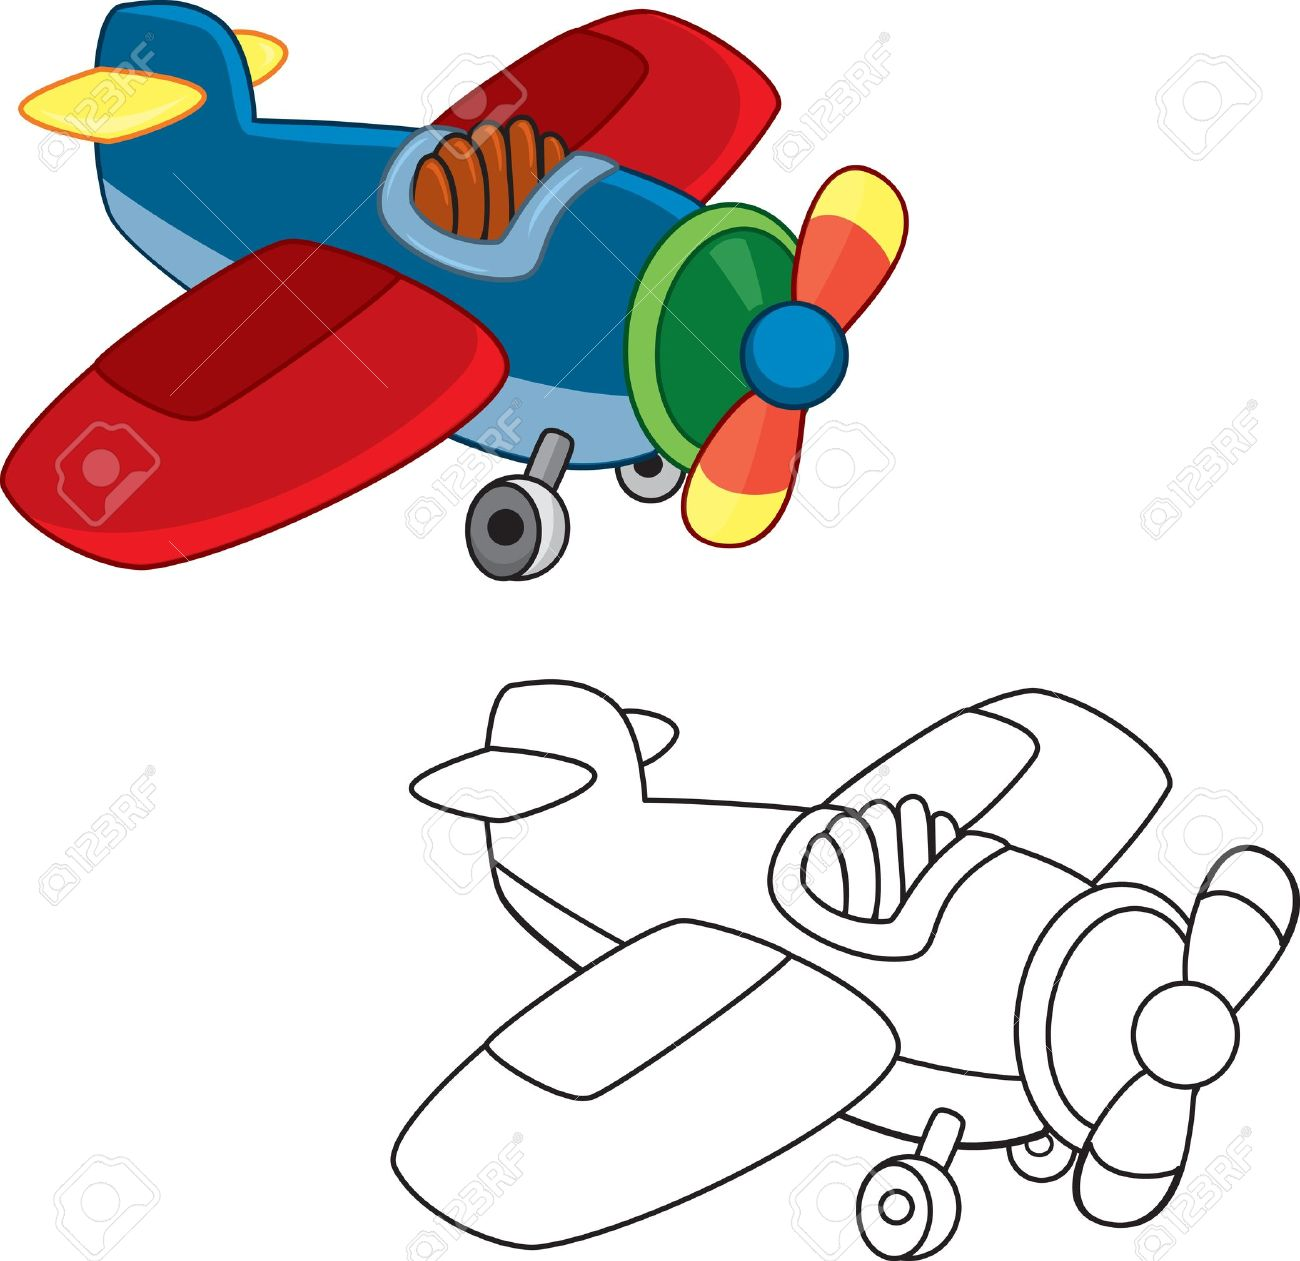 toy plane coloring book royalty free cliparts vectors and stock